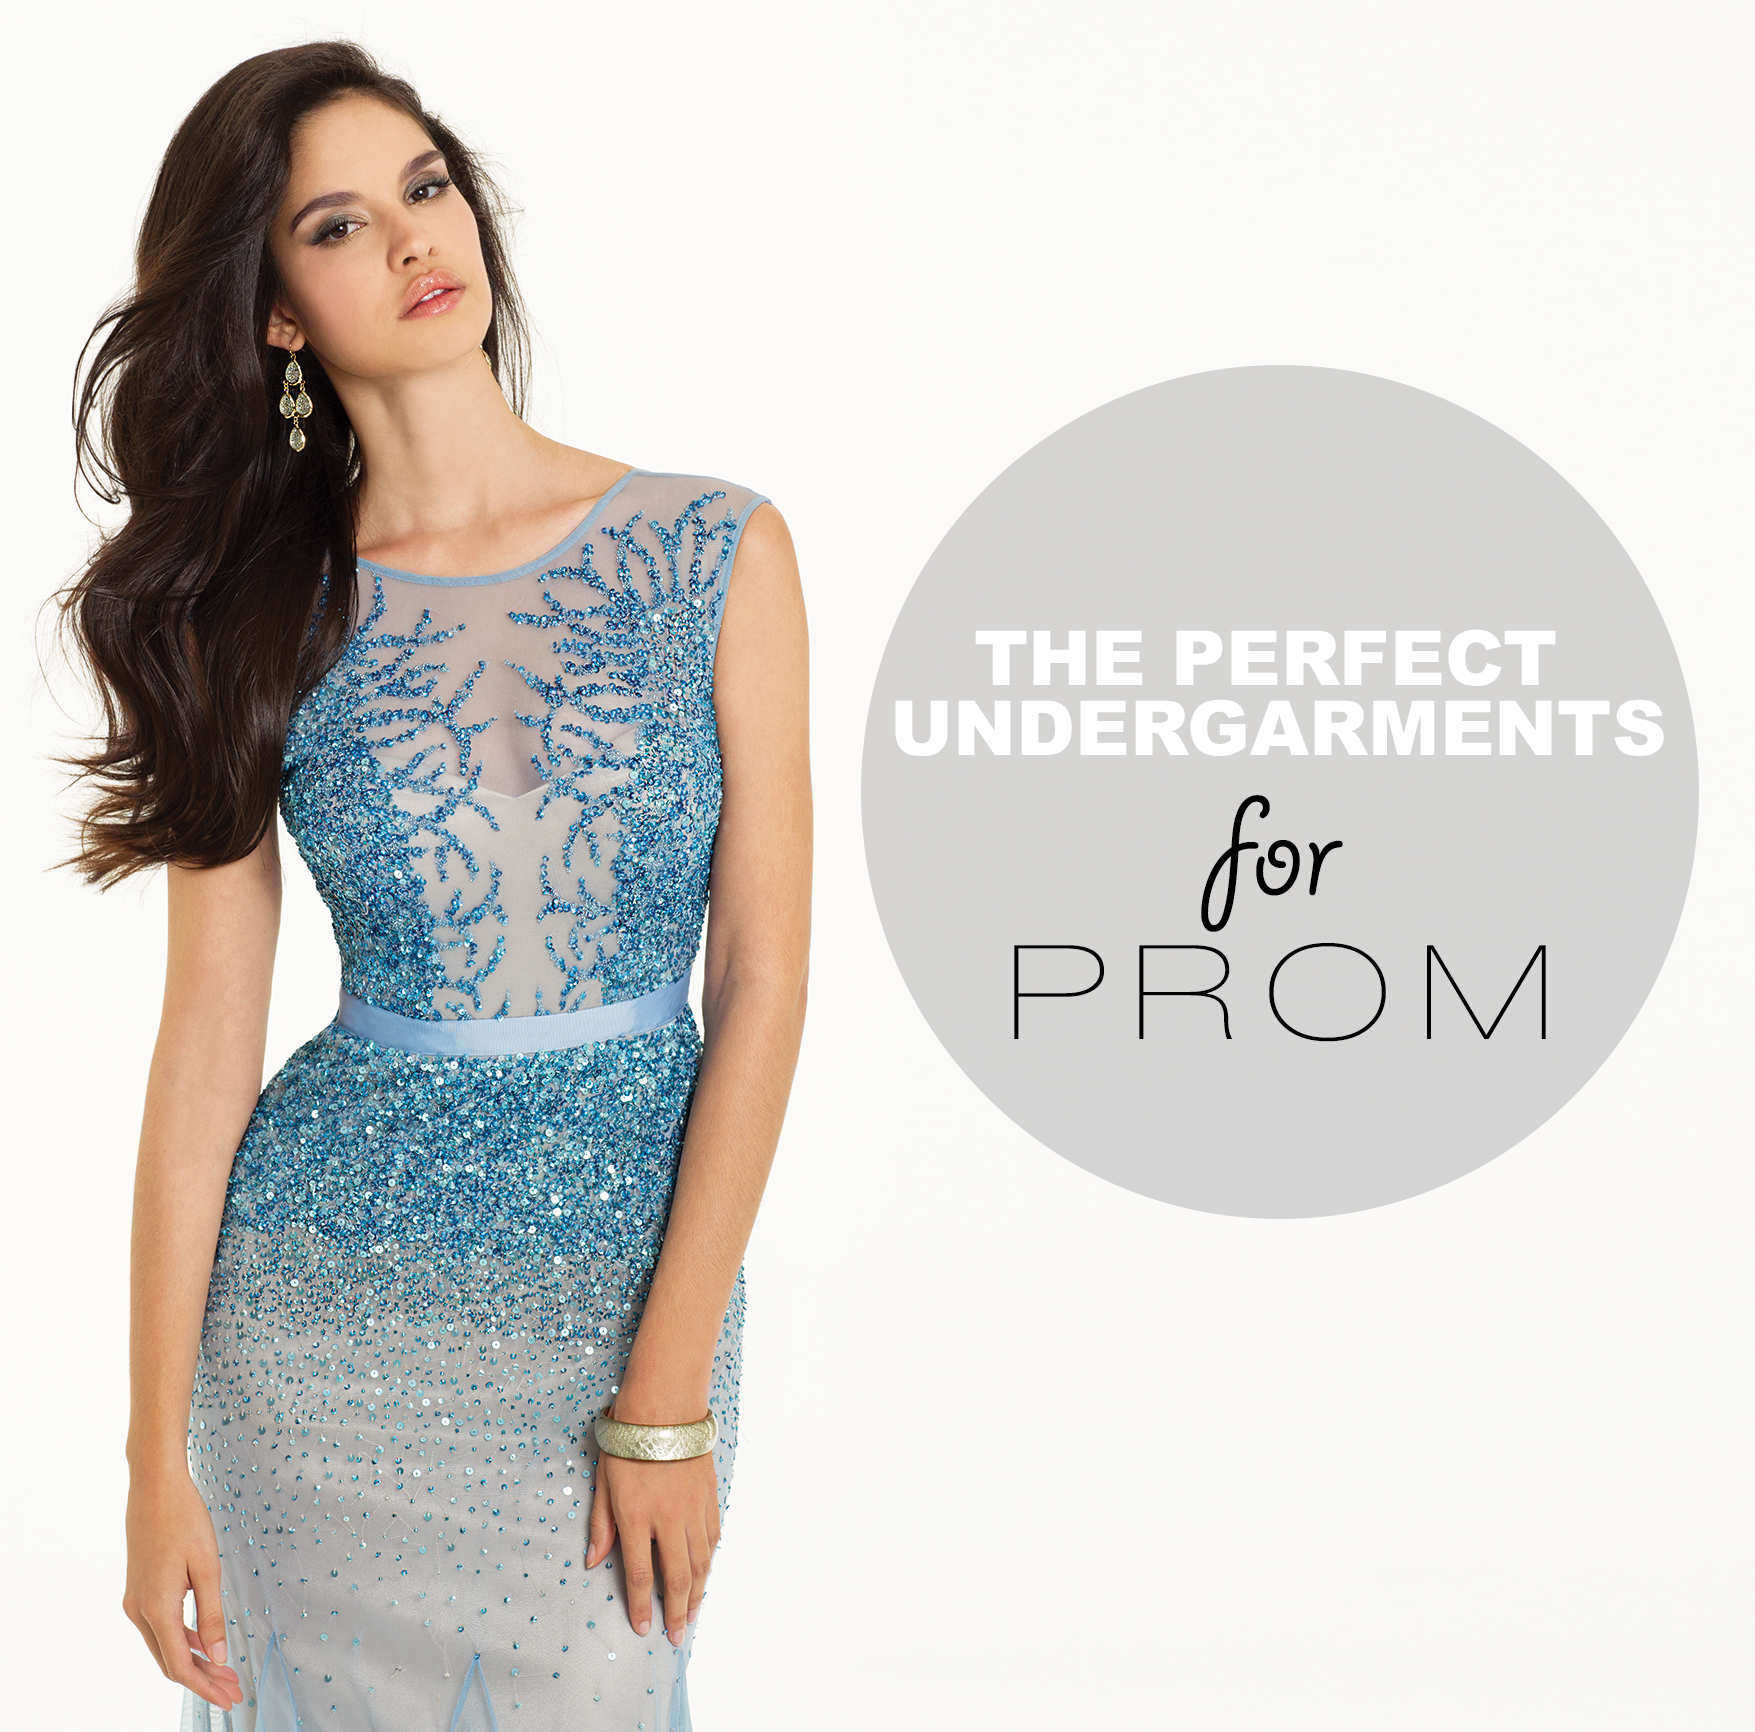 The Ideal Undergarments To Fit Your Perfect Prom Dress Camille La Vie